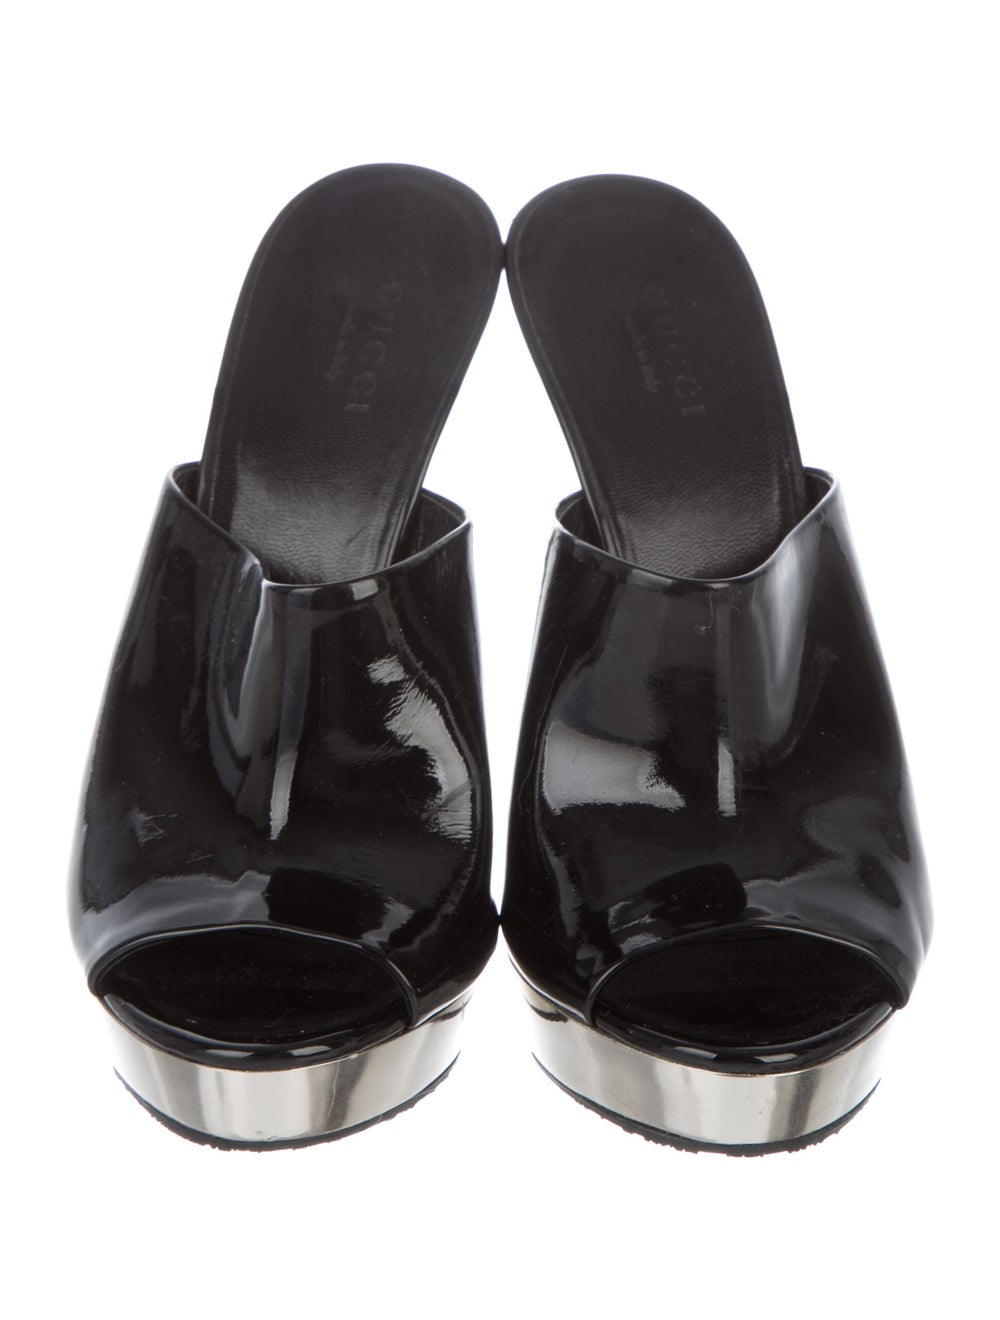 Gucci Patent Leather Mules Black - image 3